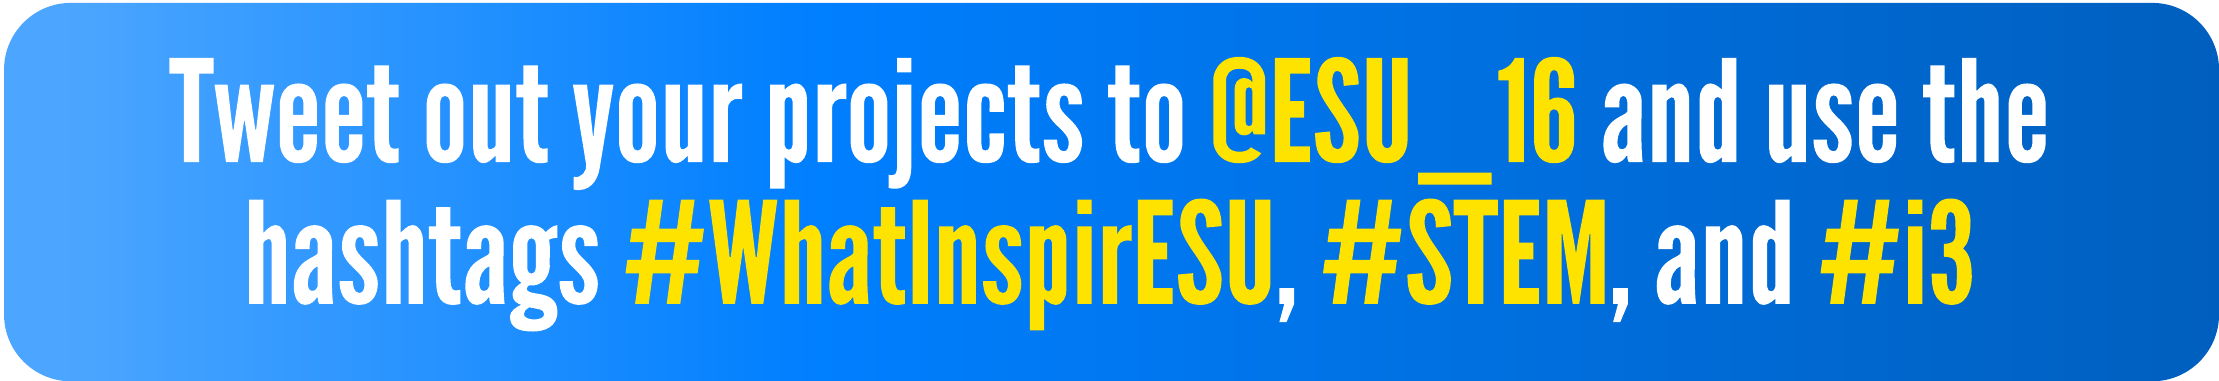 Tweet out your projects to @ESU_16 and use the hashtags #WhatInspirESU, #STEM, #i3